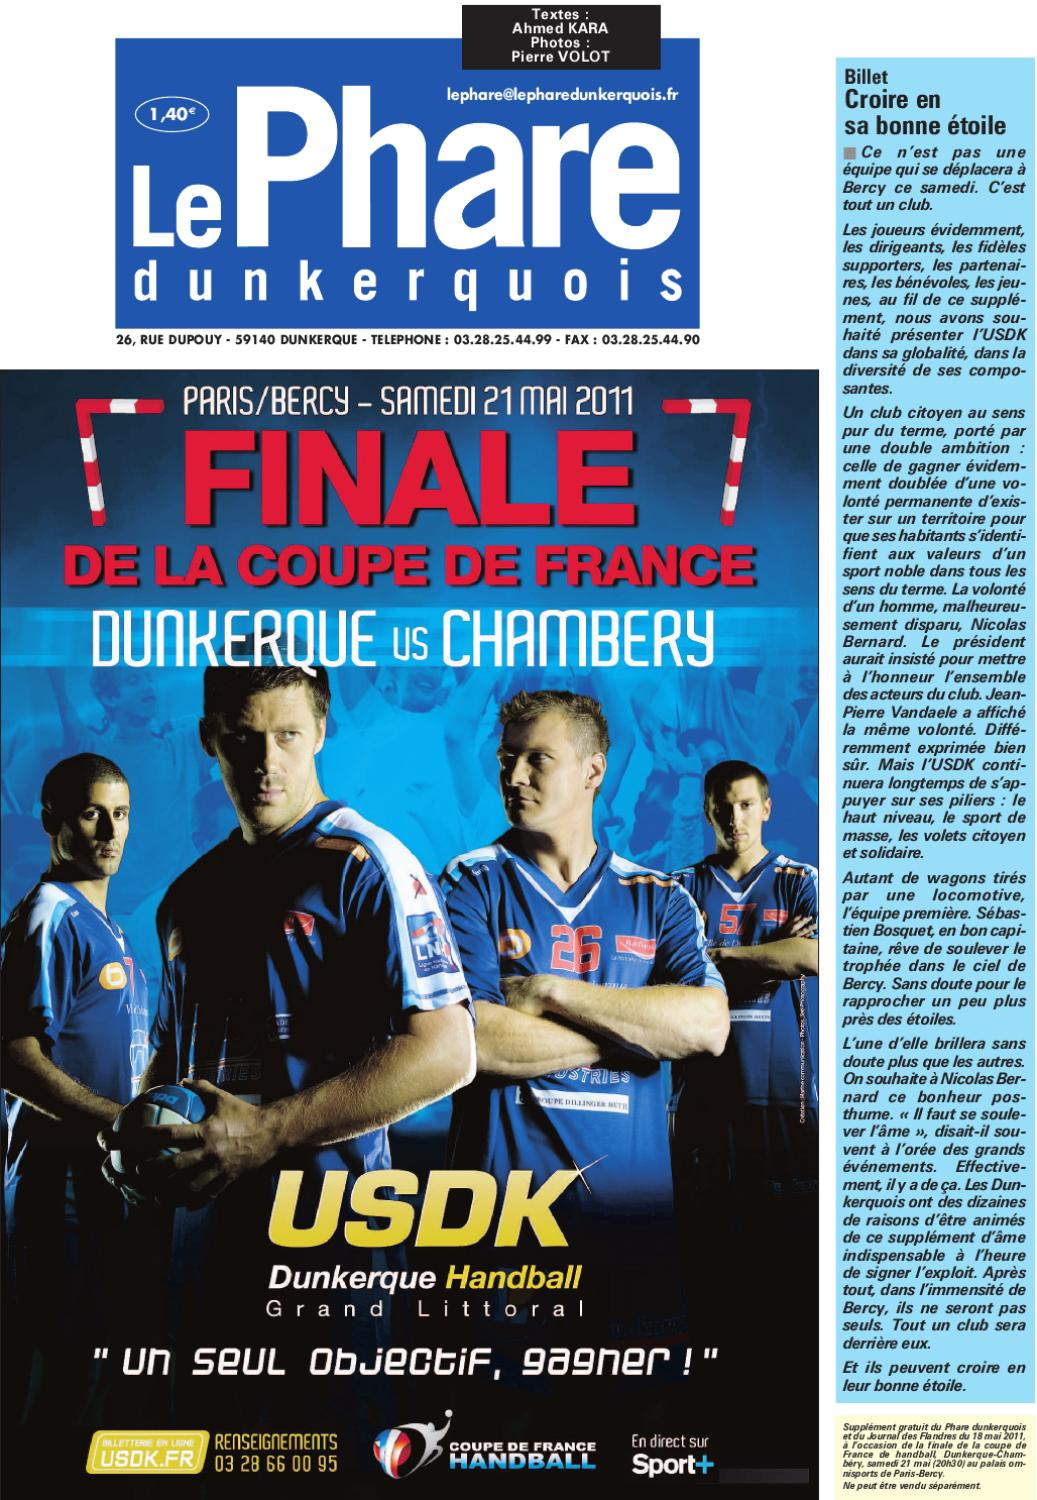 Finale de la coupe de france de handball dunkerque vs chamb ry by groupe nord littoral issuu - Coupe de france dunkerque ...